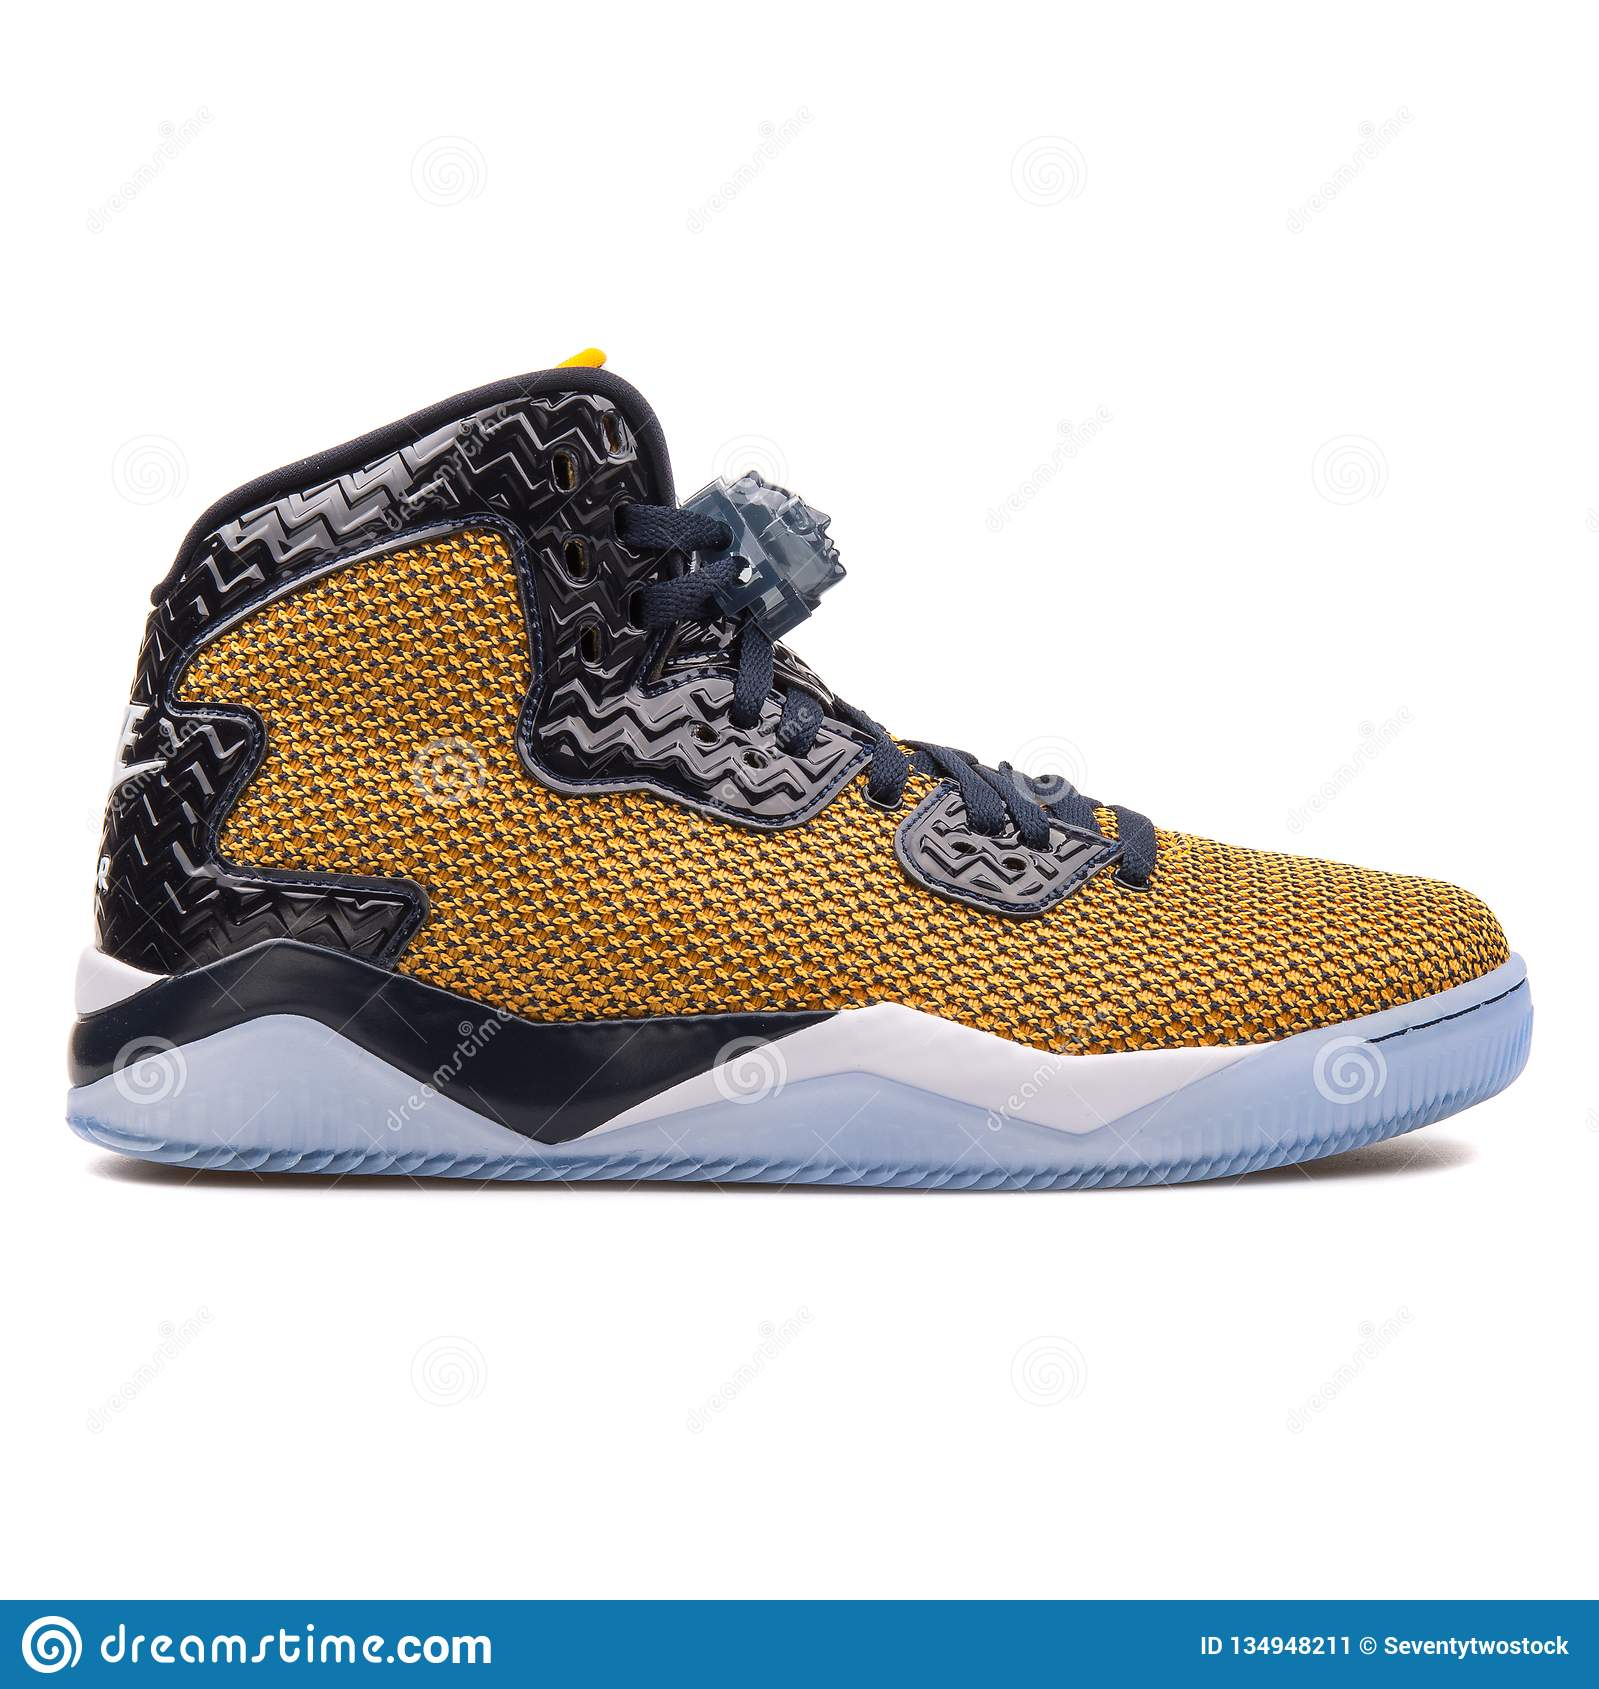 buy online 67a13 a5c15 Nike Air Jordan Spike Forty gold and navy blue sneaker